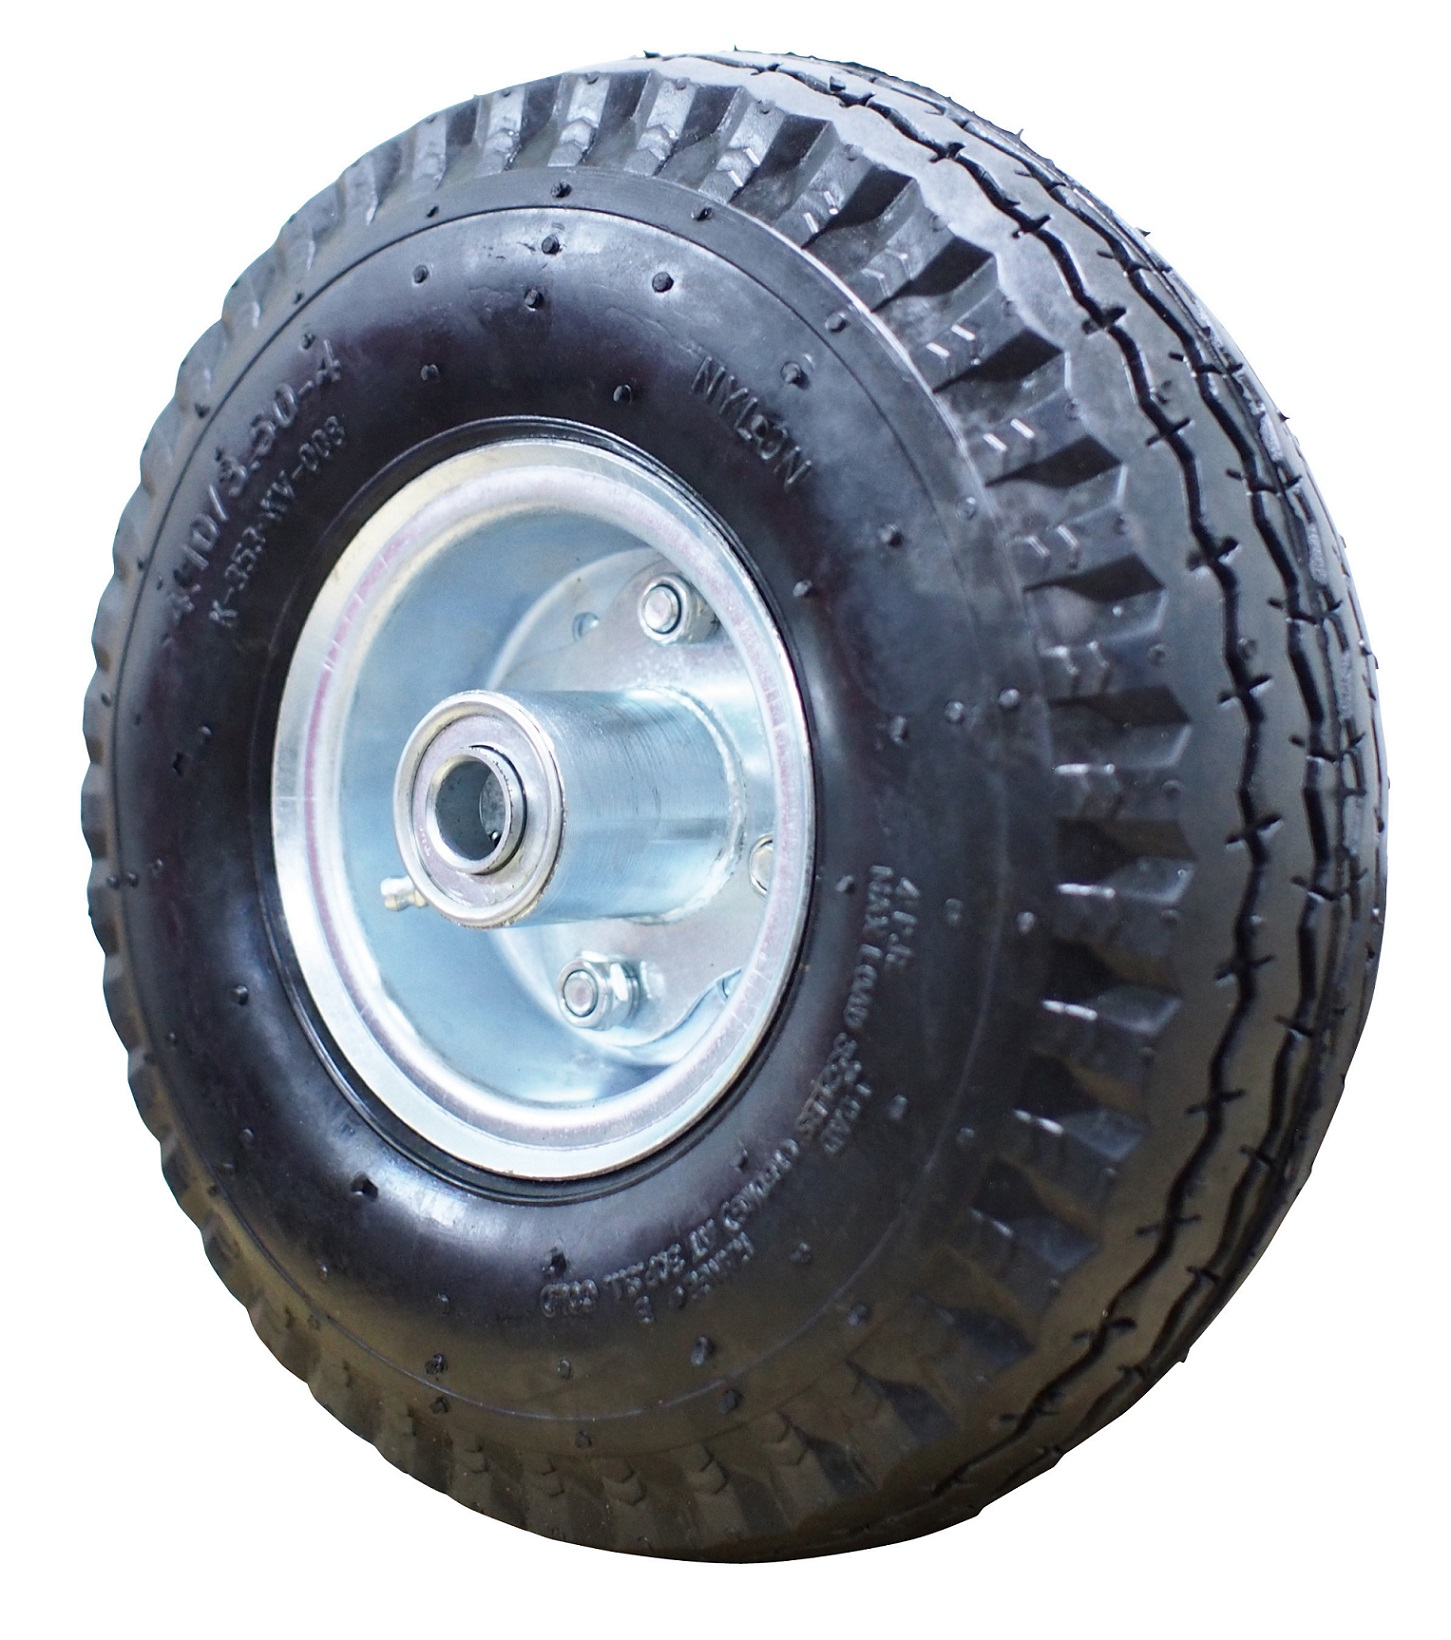 10 inch Pneumatic Air tire on steel rim